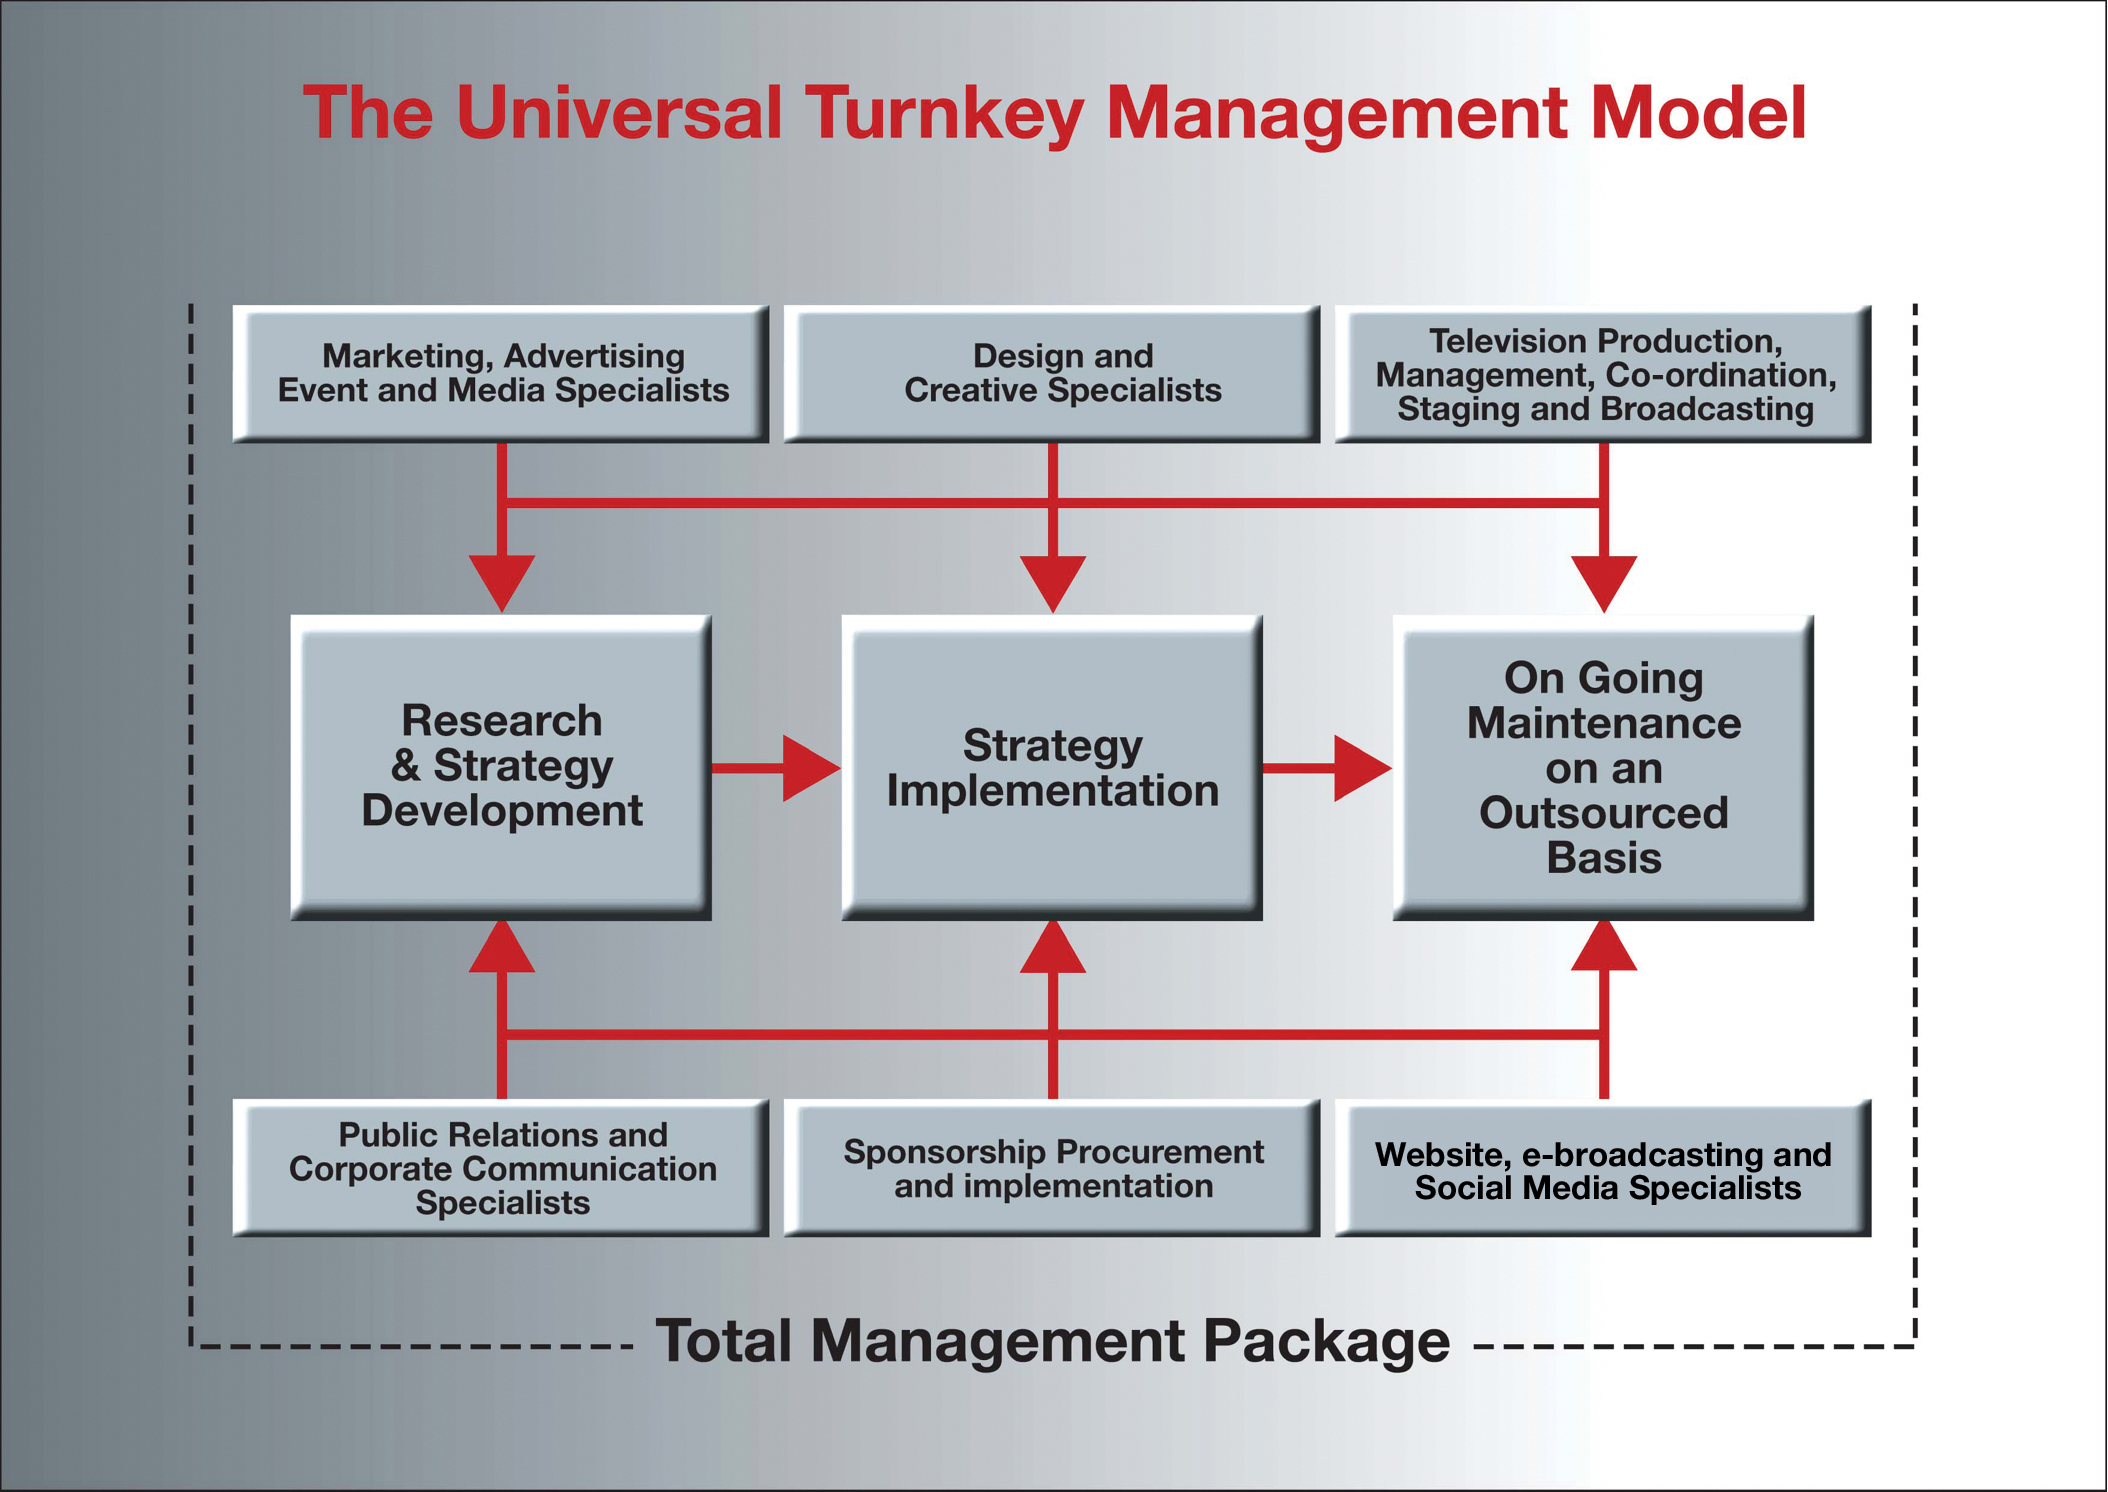 The Universal Turnkey Management Model